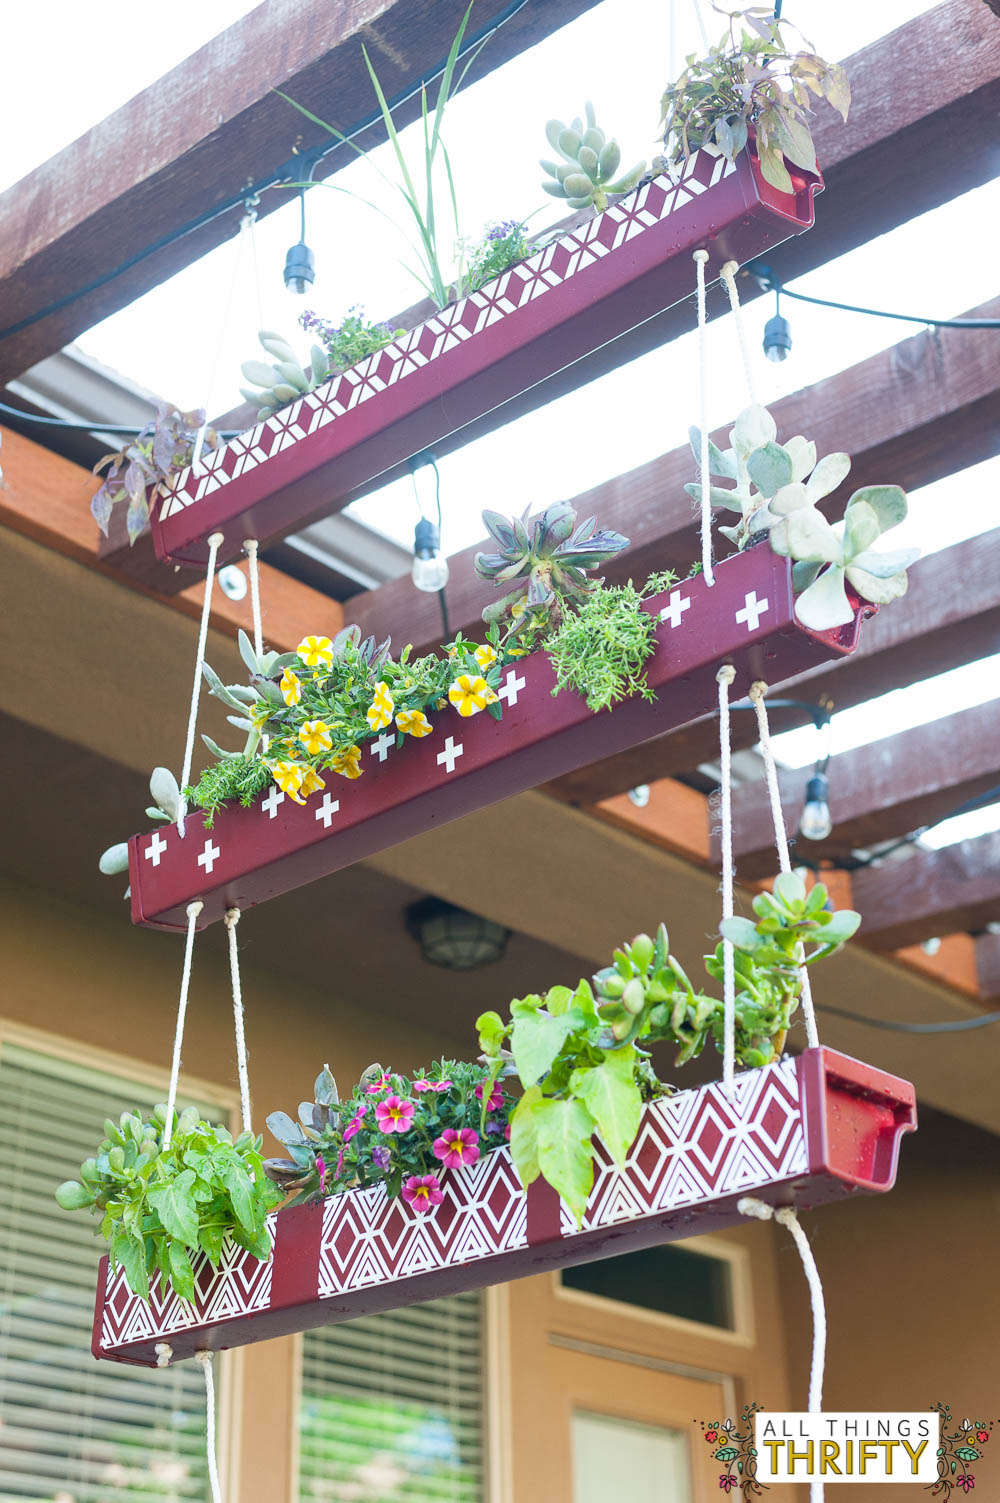 Rain Gutter Hanging Planter with Instructions | All Things ... | 1000 x 1503 jpeg 251kB